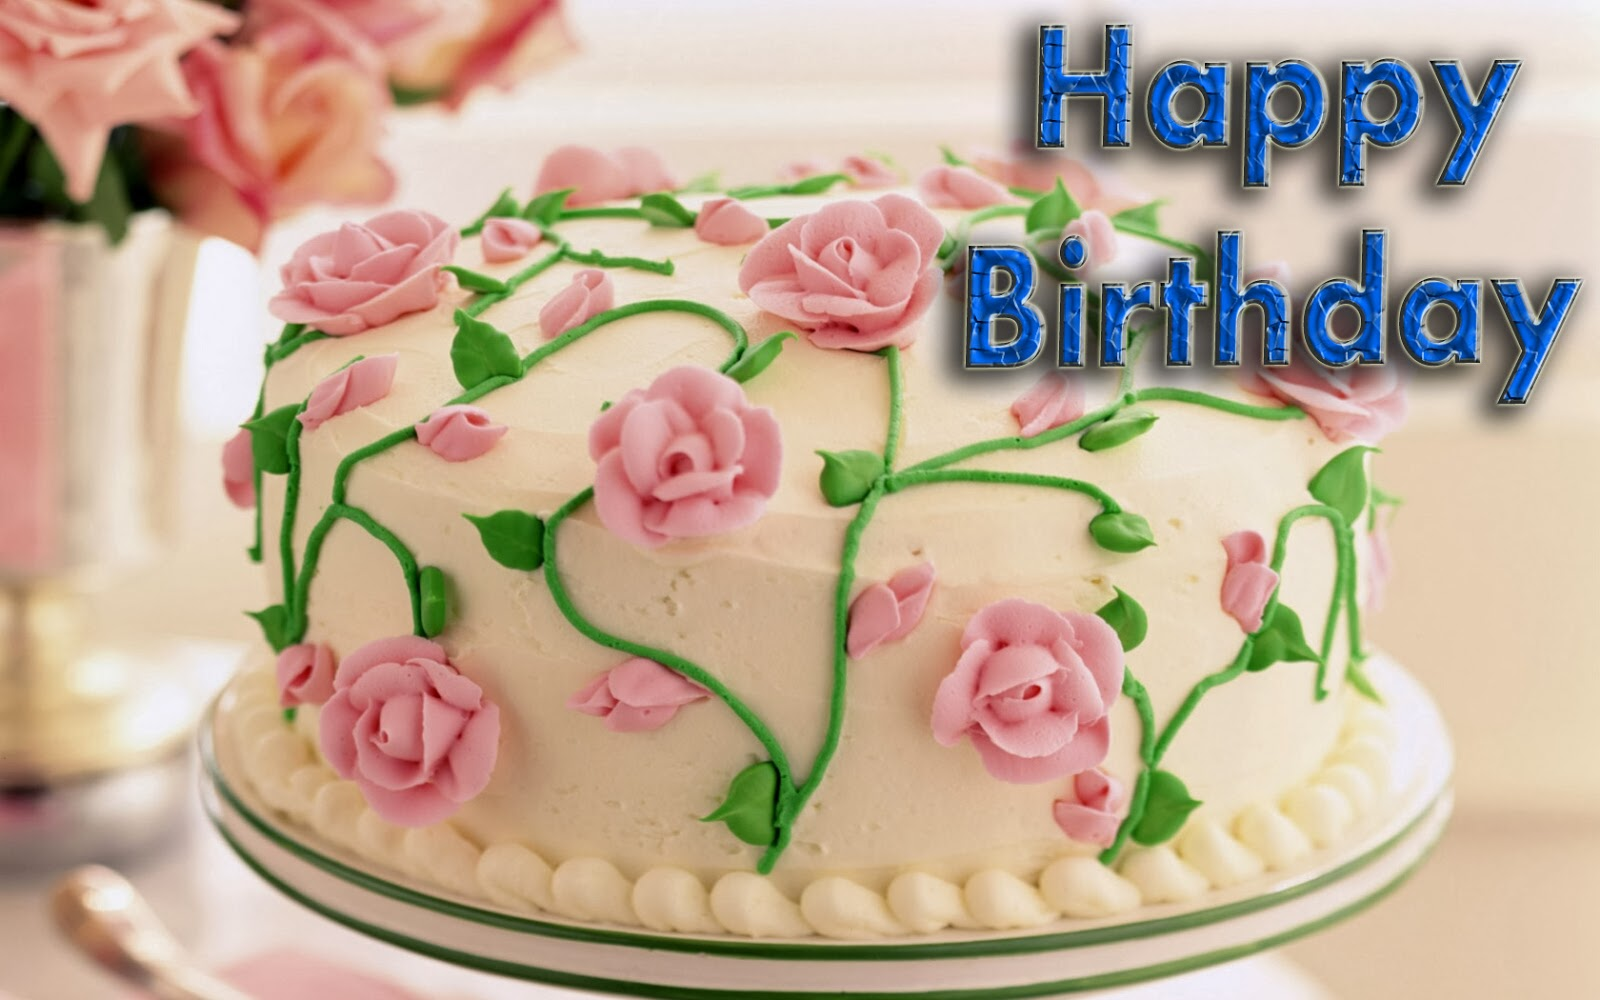 Birthday Wishes Images With Cake And Flowers : Lovable Images: Happy Birthday Greetings free download ...